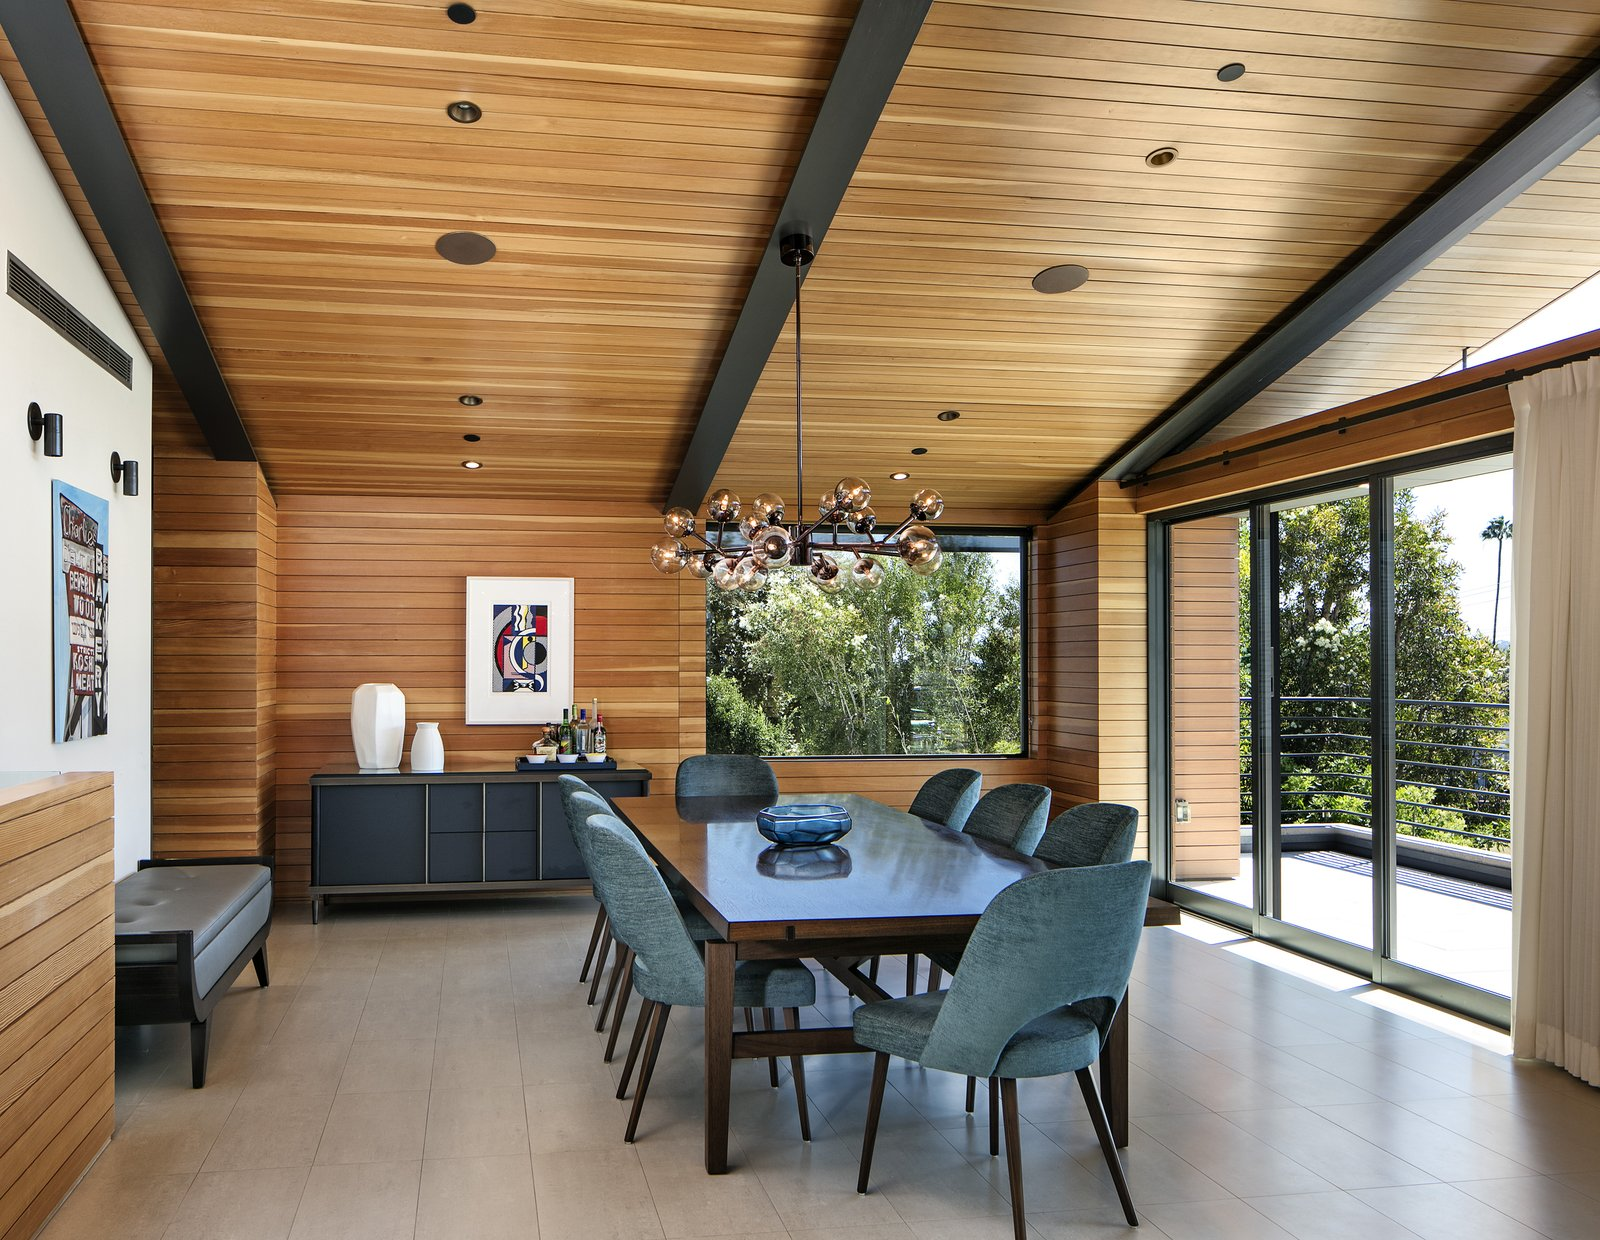 The formal dining area, also on the top level of the home, features Mid-Century furniture and lighting.    Cohen Residence by Abramson Teiger Architects